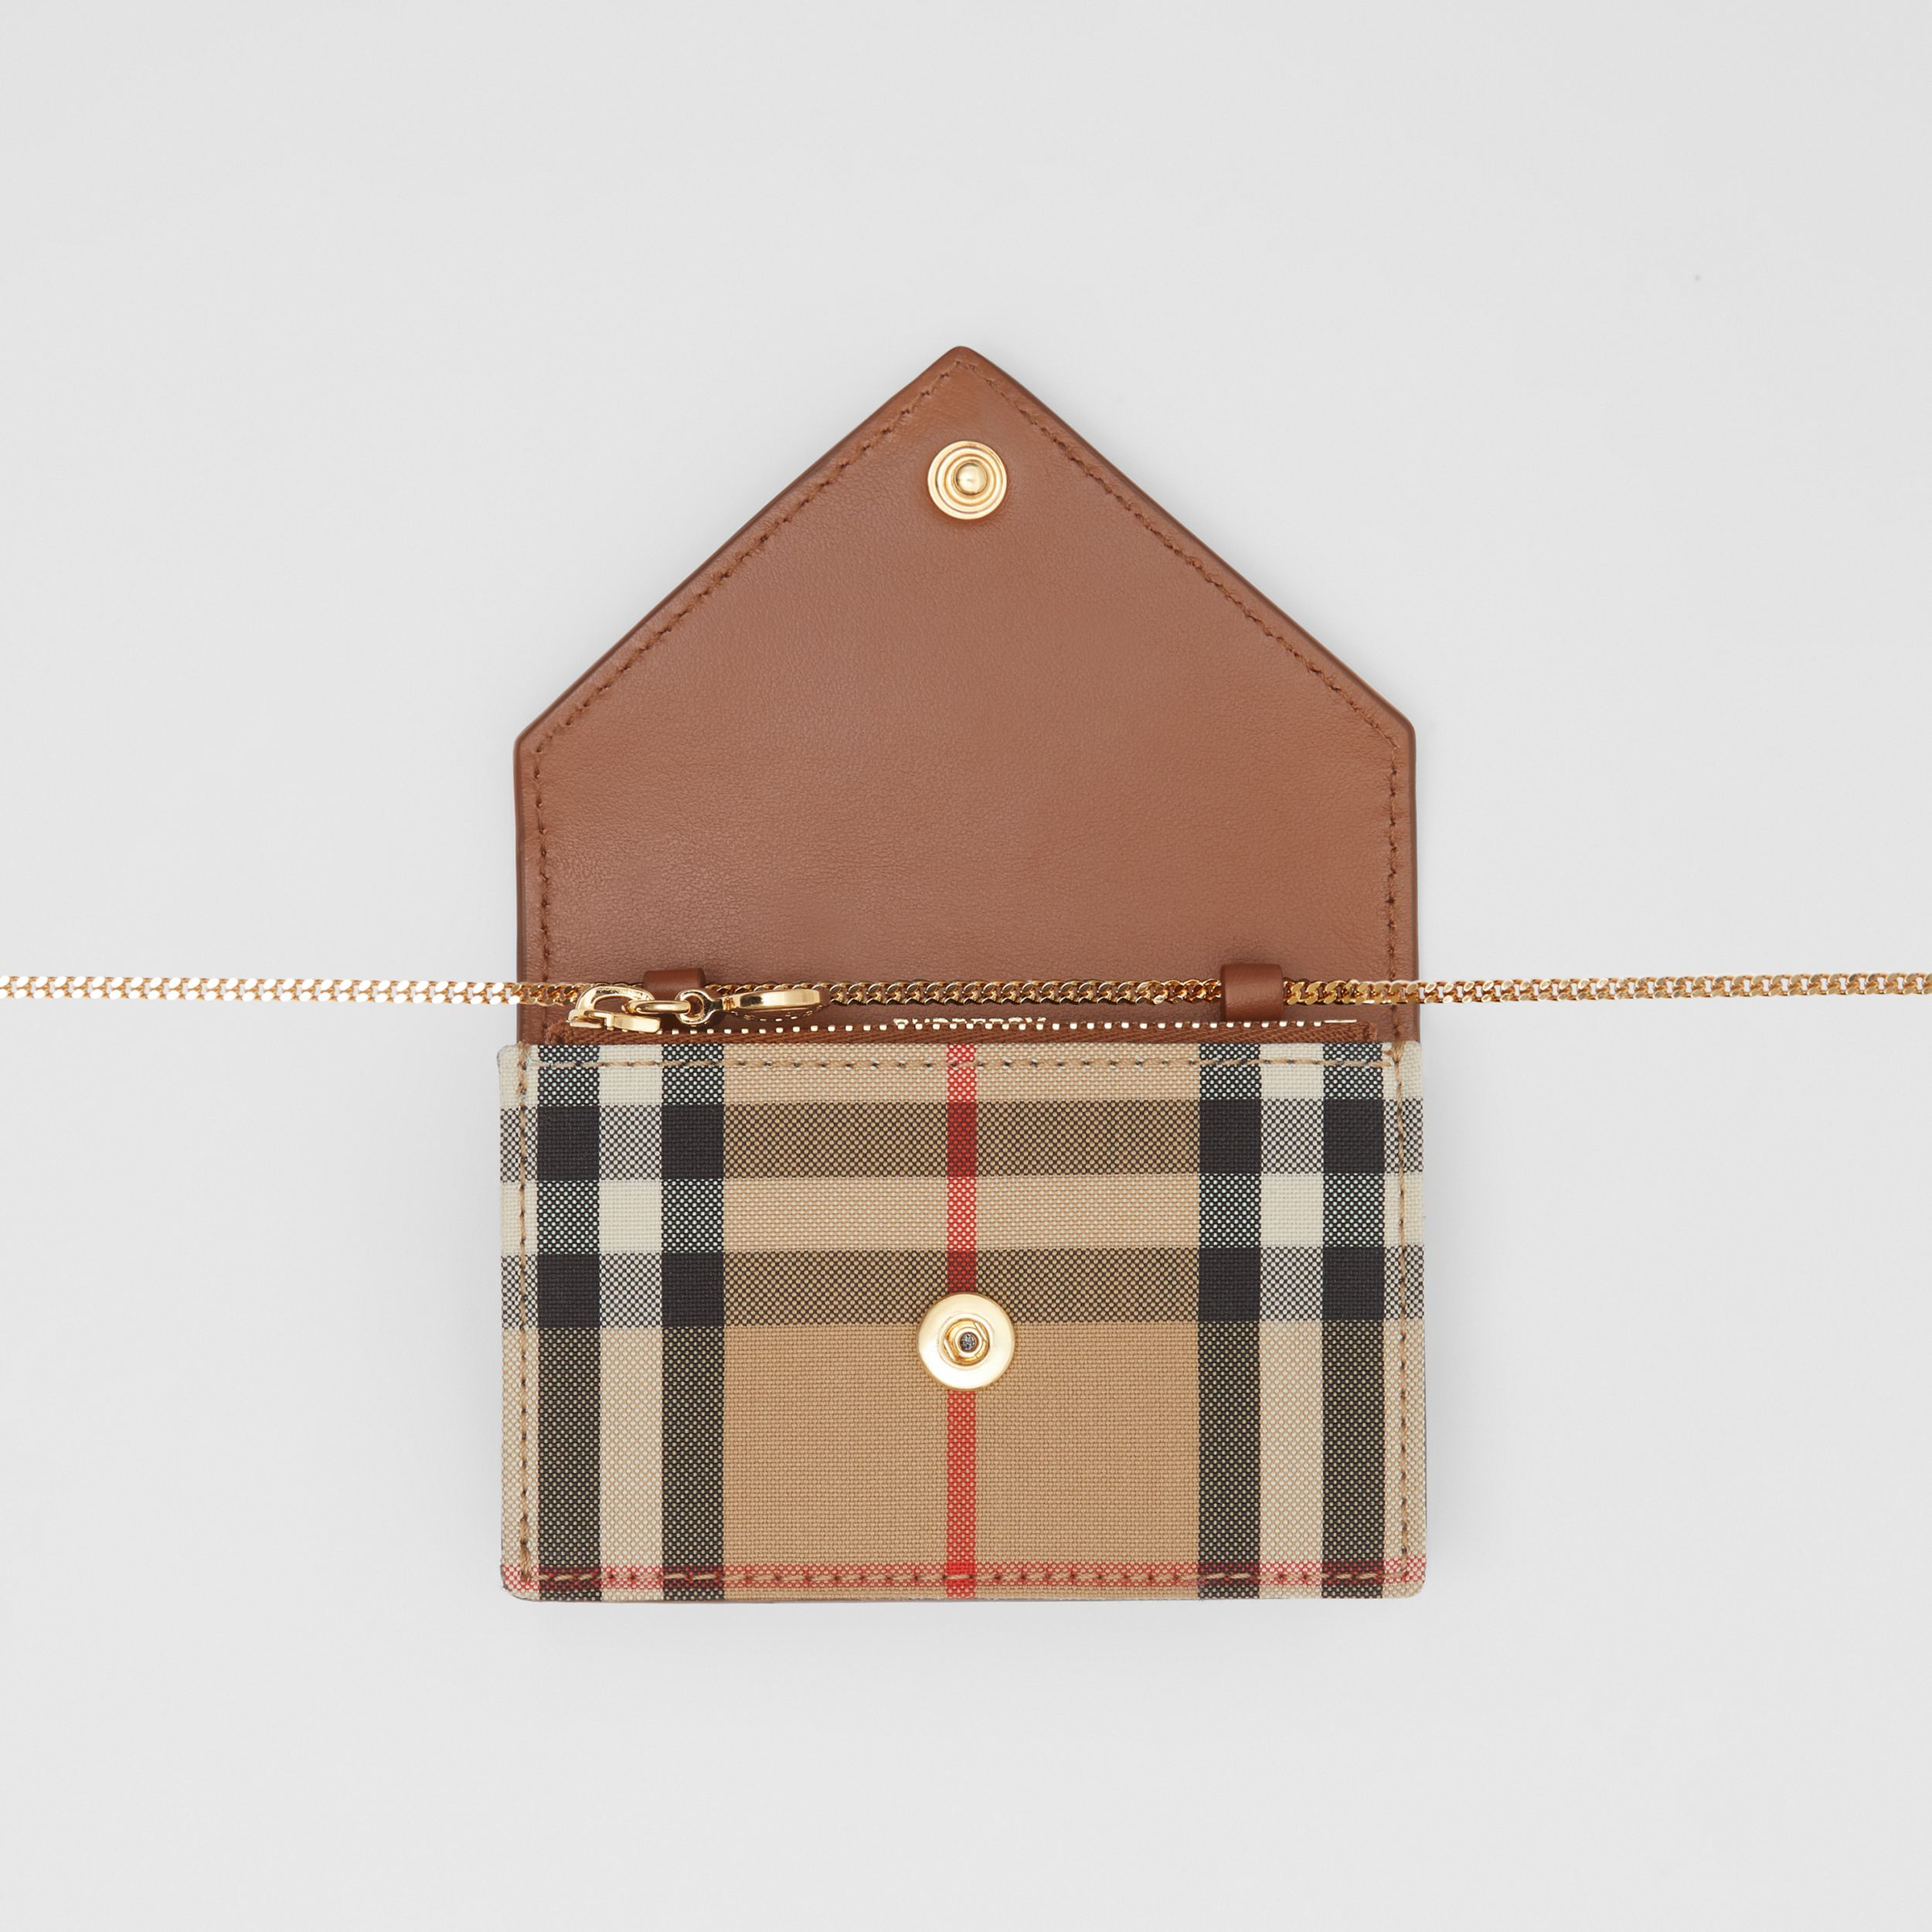 Vintage Check and Leather Card Case with Strap in Tan - Women | Burberry United Kingdom - 2